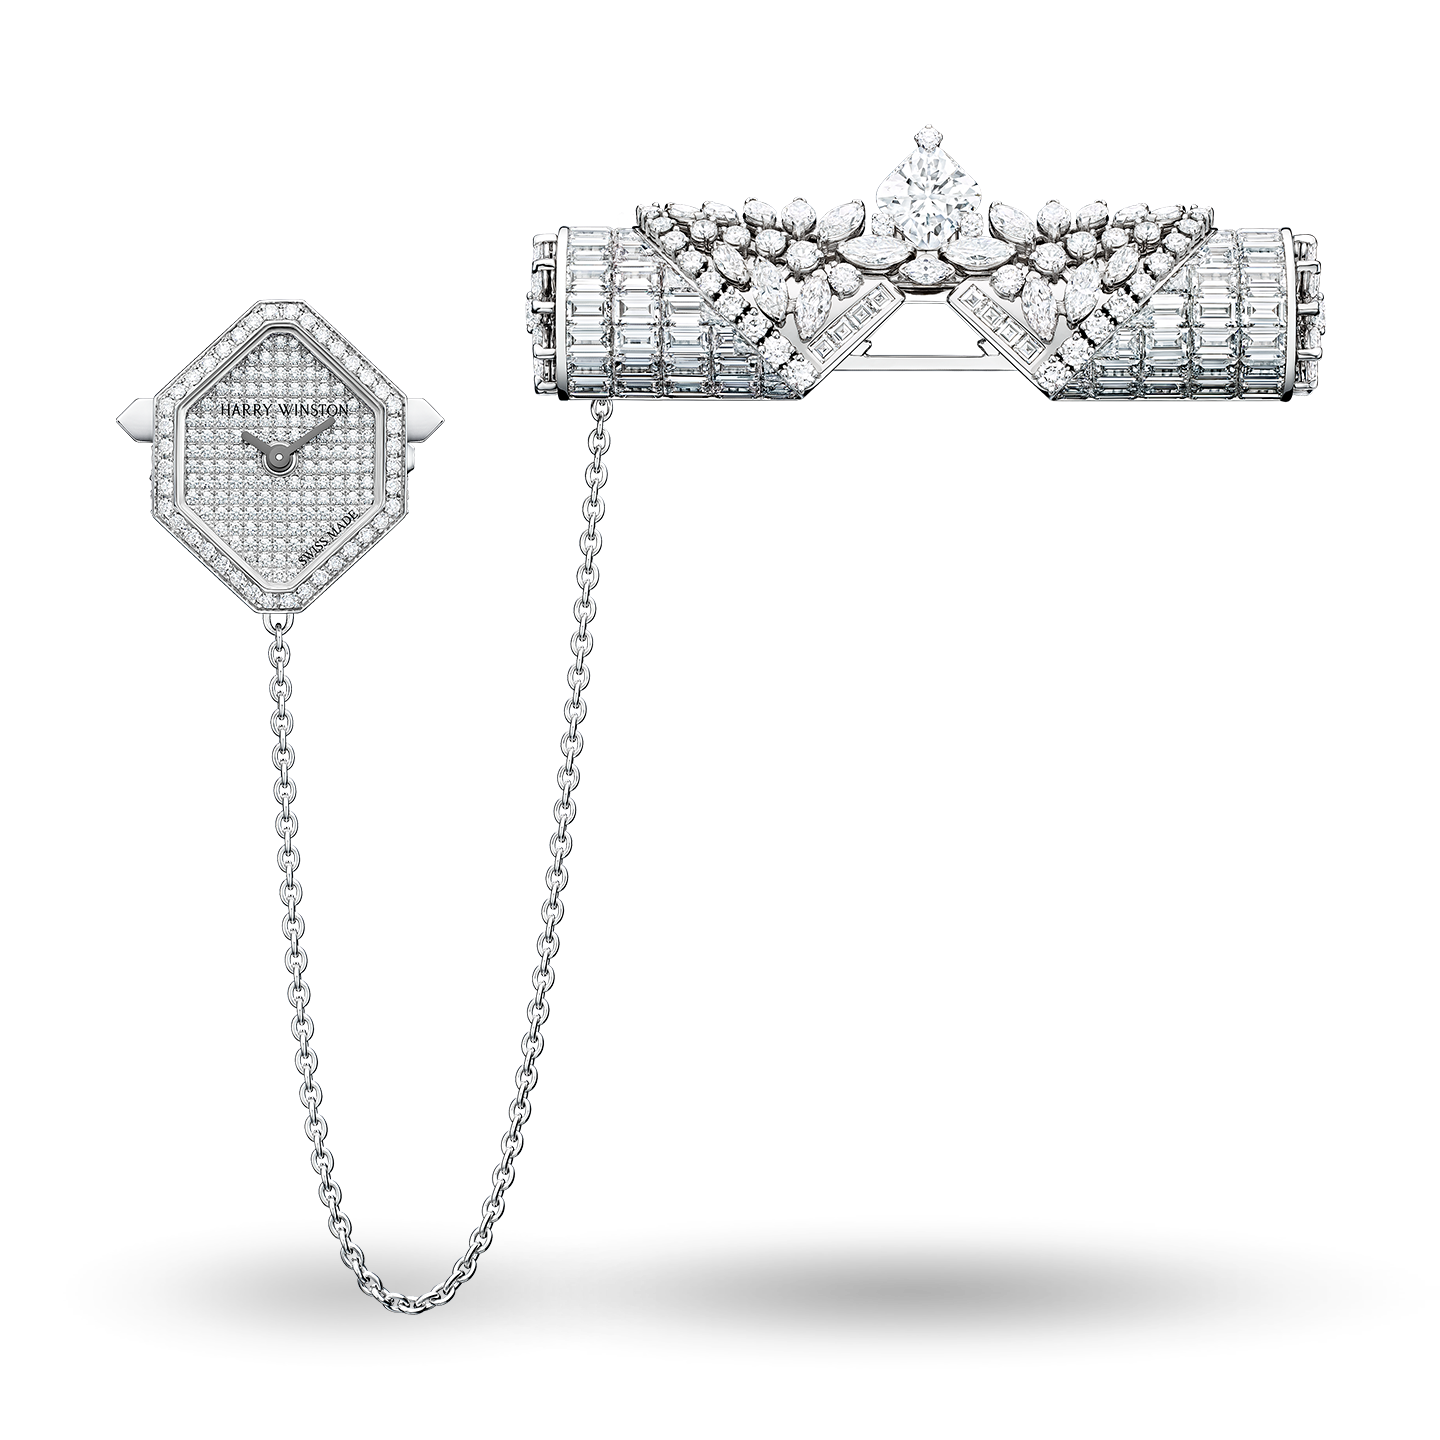 My Precious Time by Harry Winston, product image 1